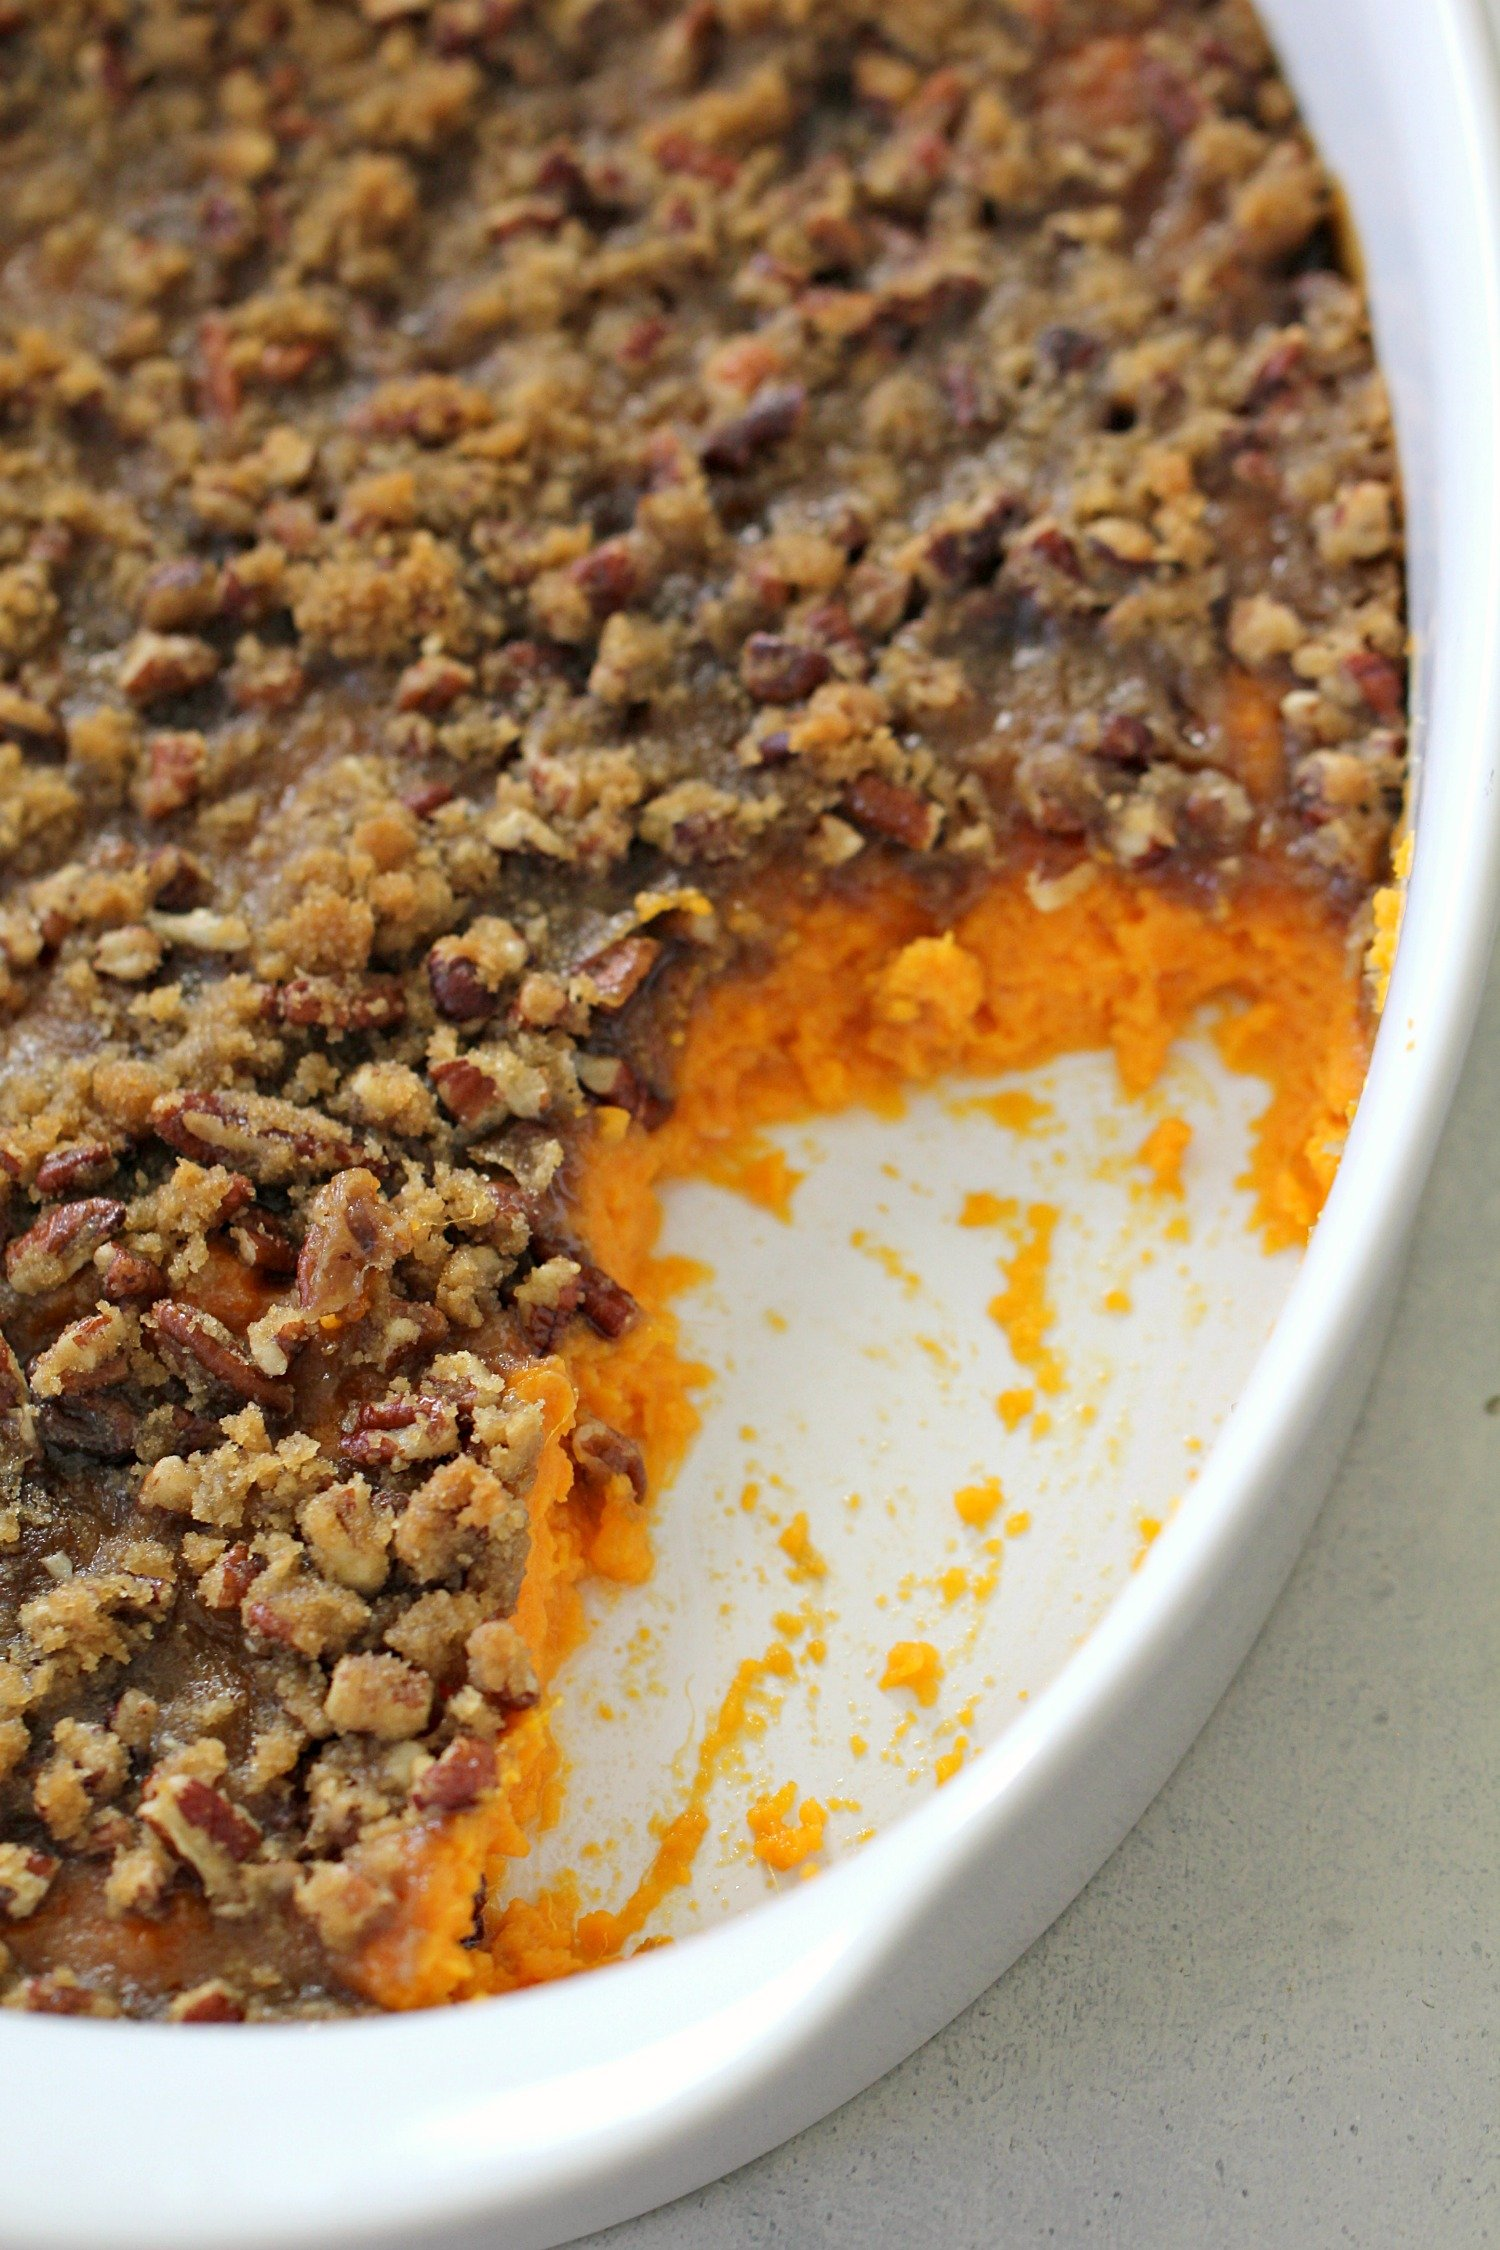 sweet potato casserole with pecan brown sugar topping in a large white pan